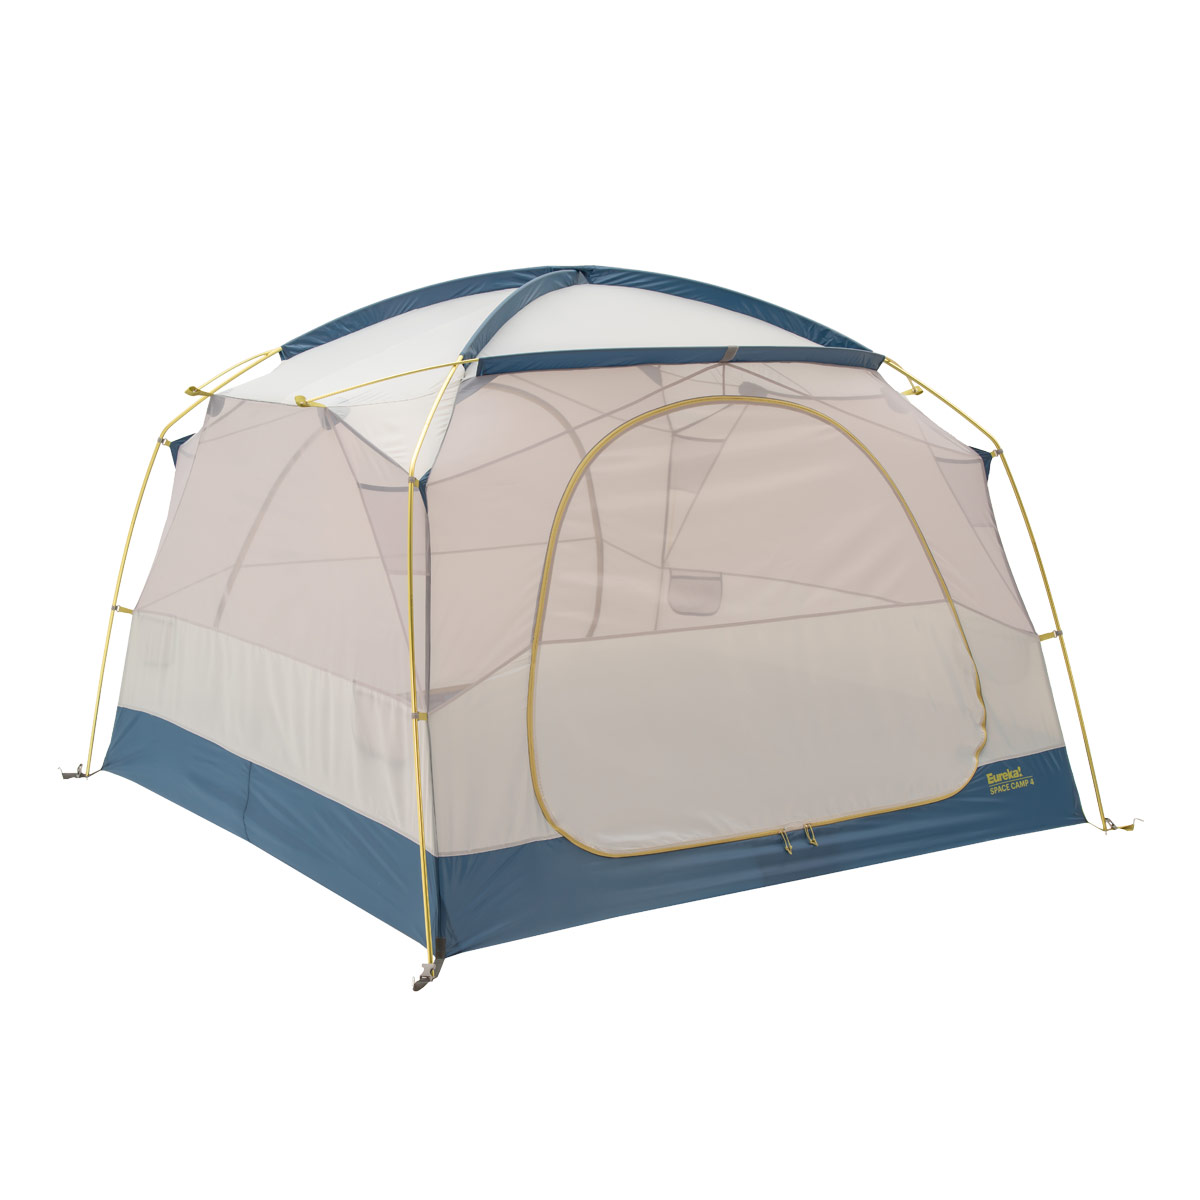 Space Camp 4 Tent